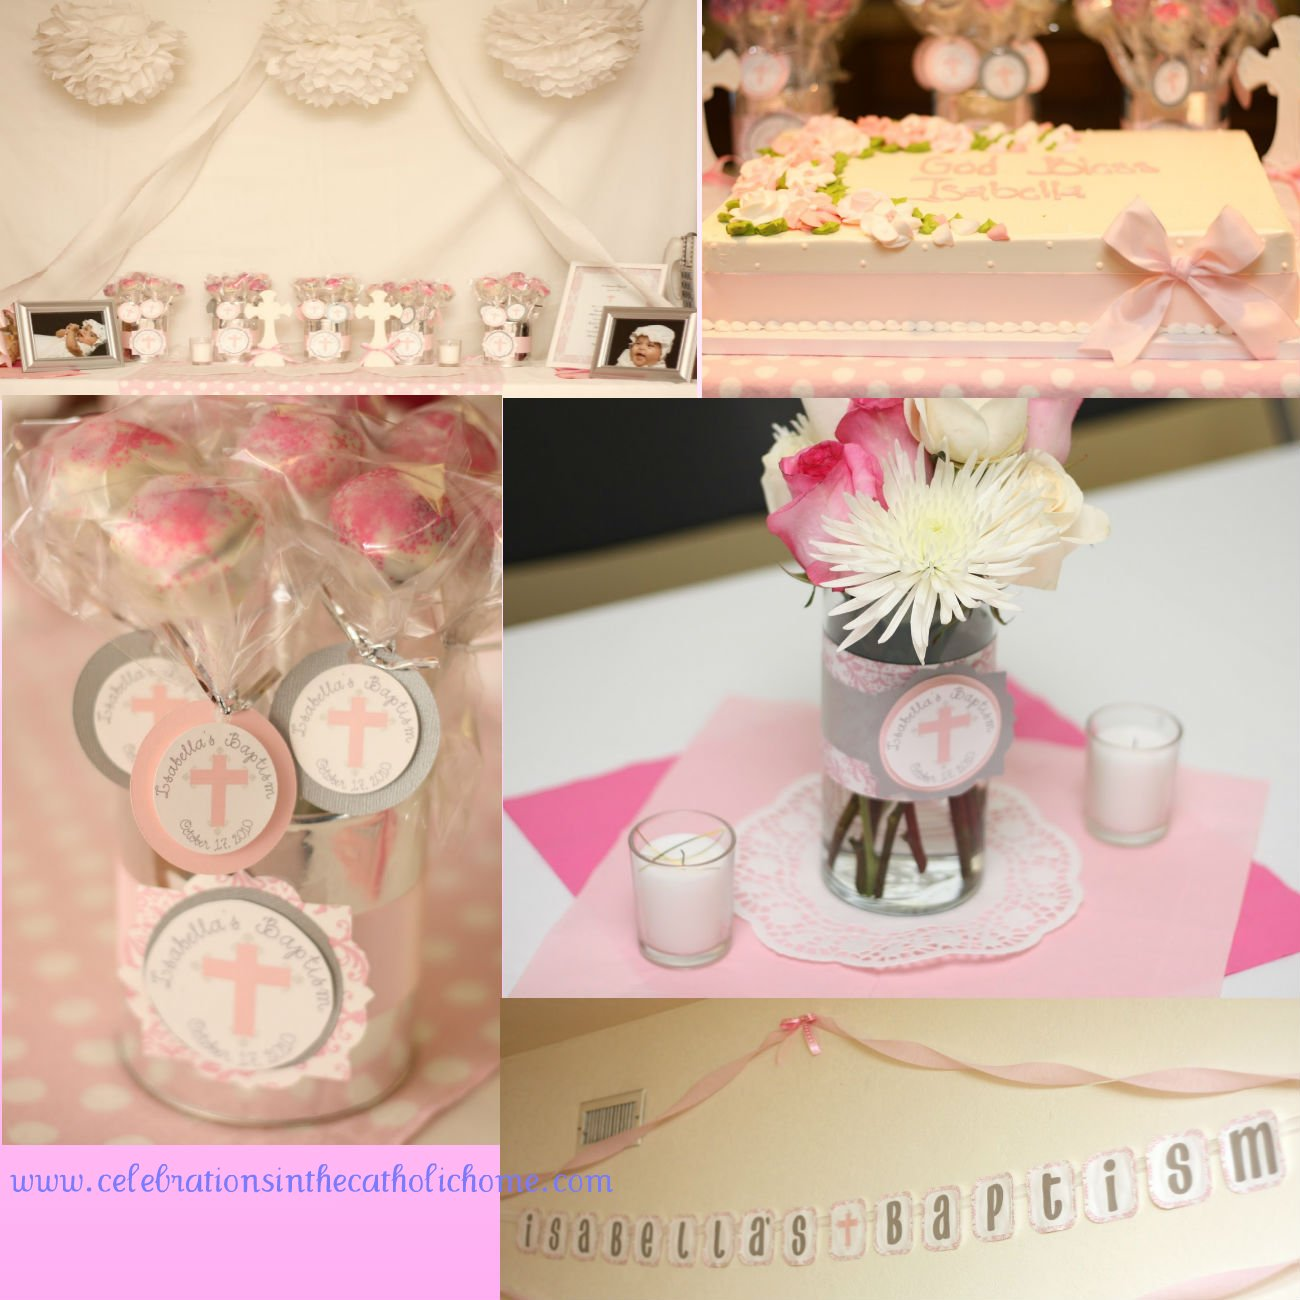 Celebrations in the catholic home baptism decoration ideas - Decorations for a baptism ...